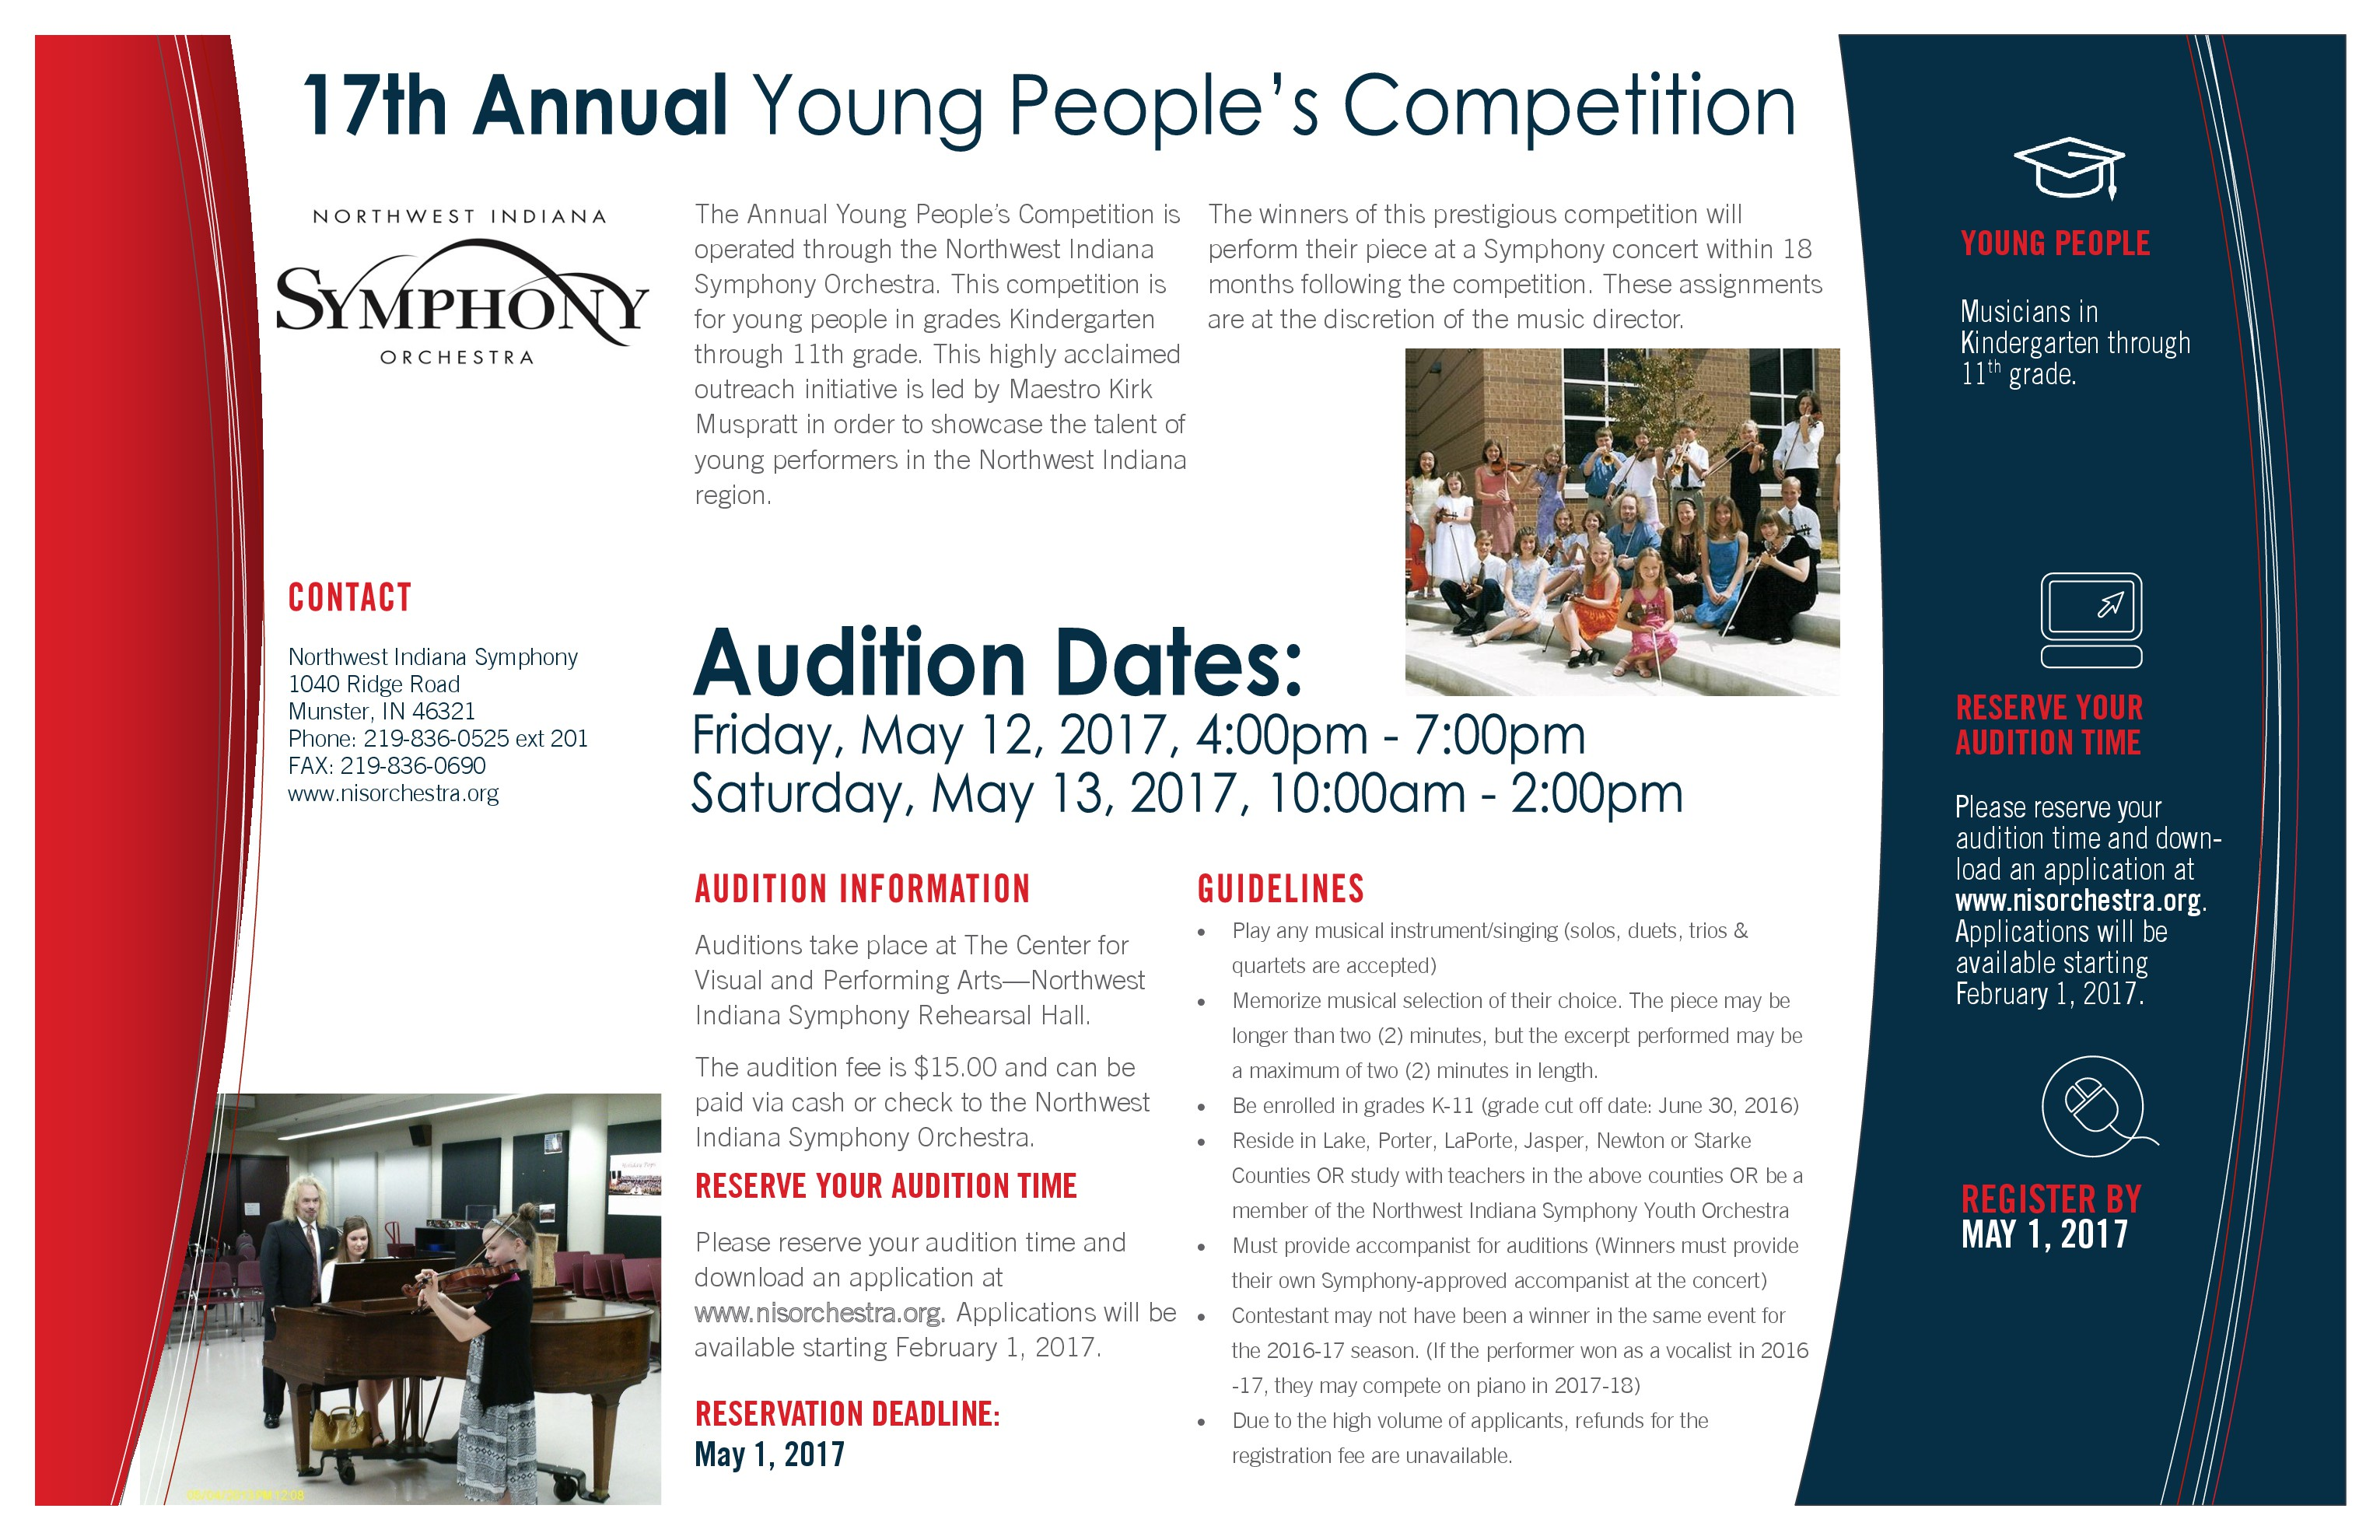 17th_Annual_Young_Peoples_Competition.jpg